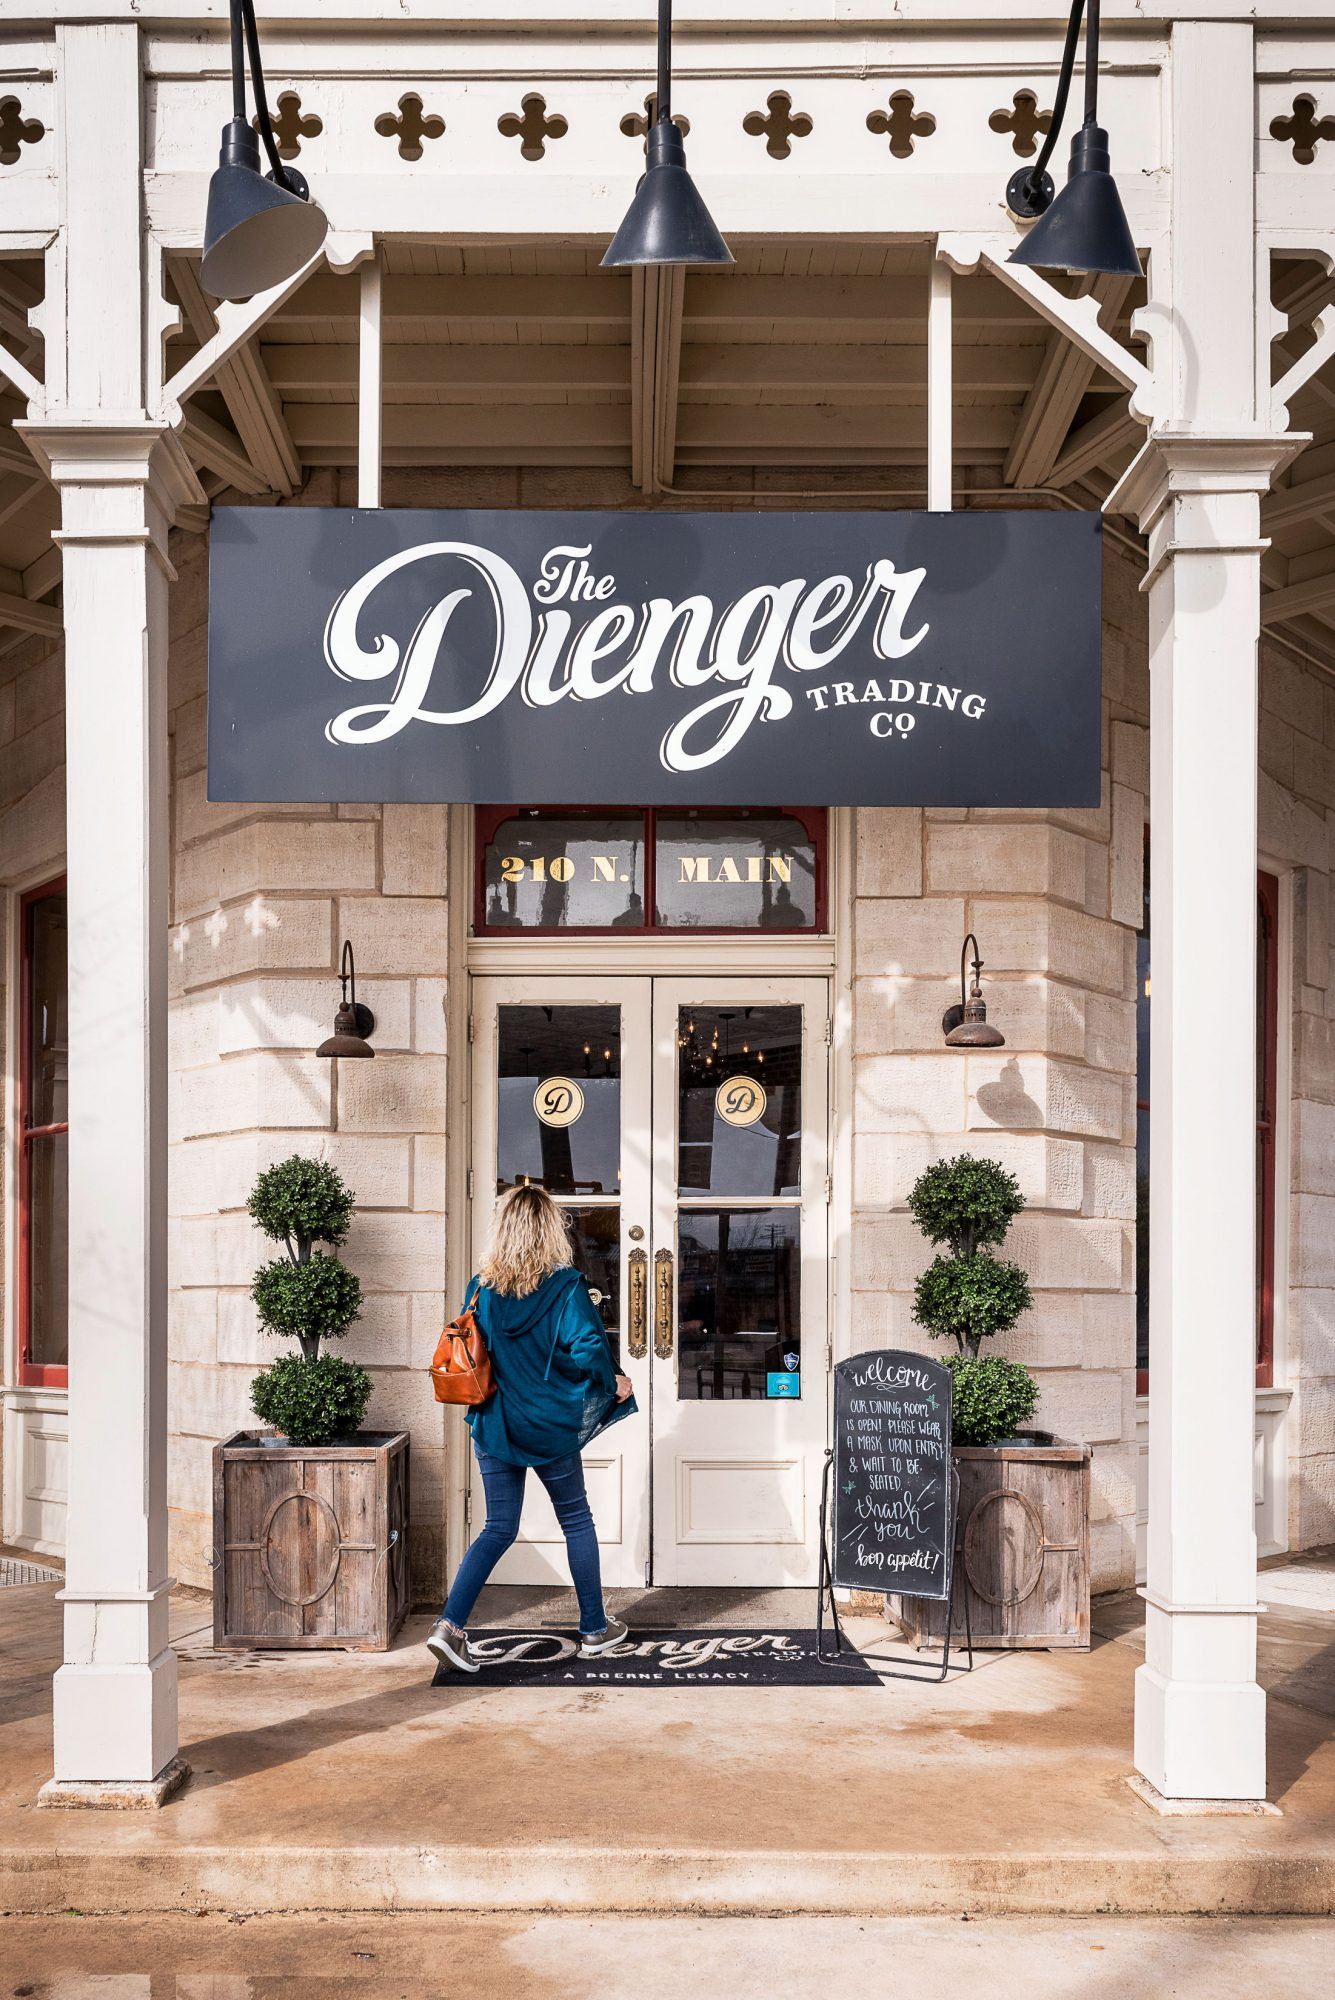 The Dienger Trading Co. in Boerne, TX